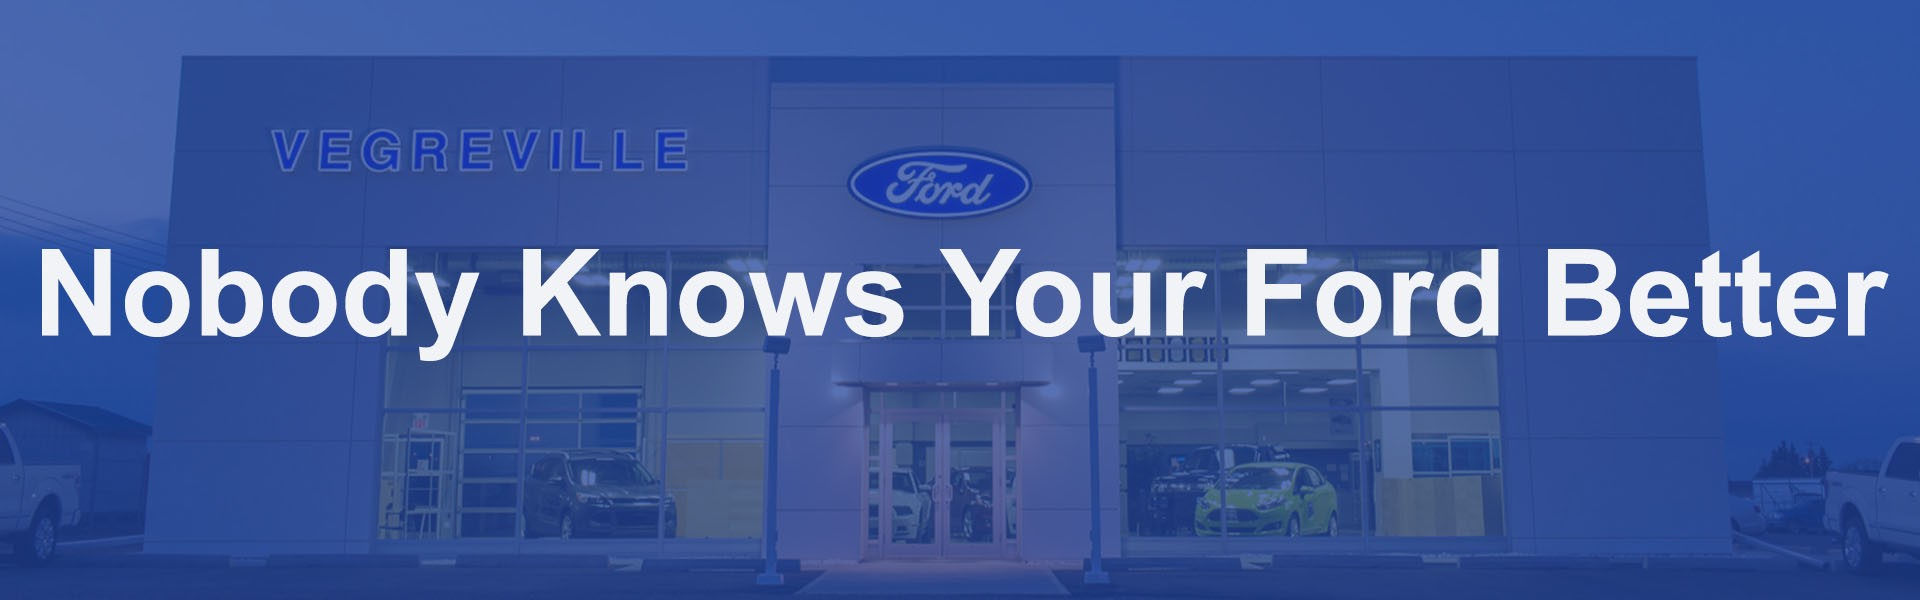 When it comes to Parts and Accessories, Nobody Knows your Ford Better than Vegreville Ford.